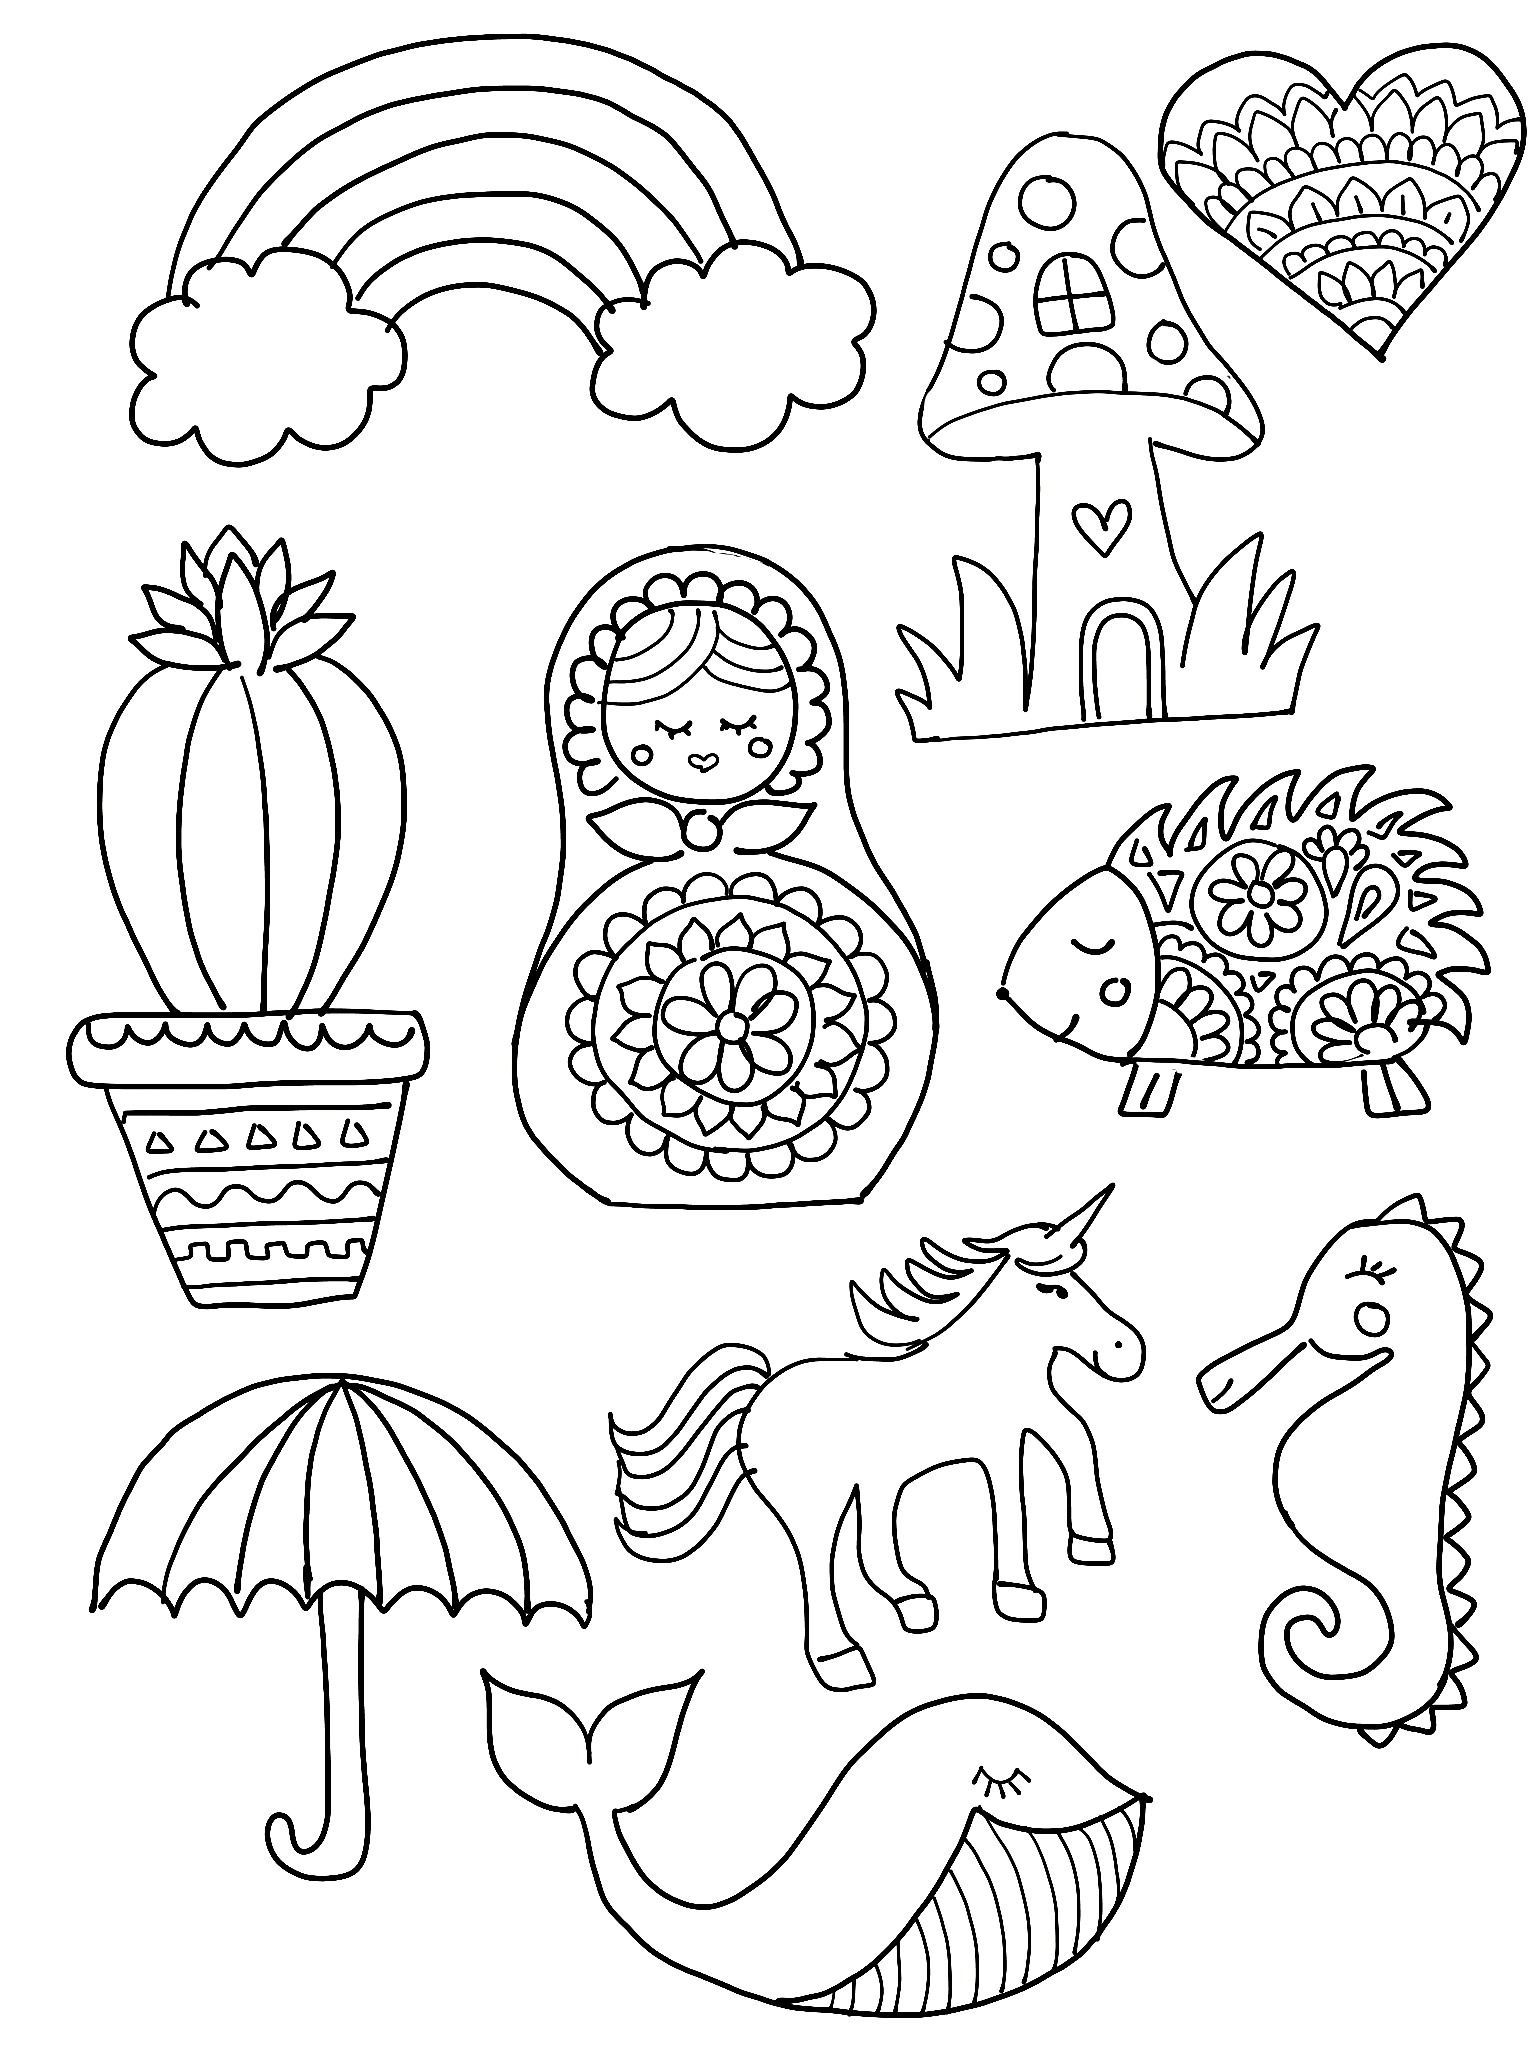 Pin on Coloring pages, templates & printables